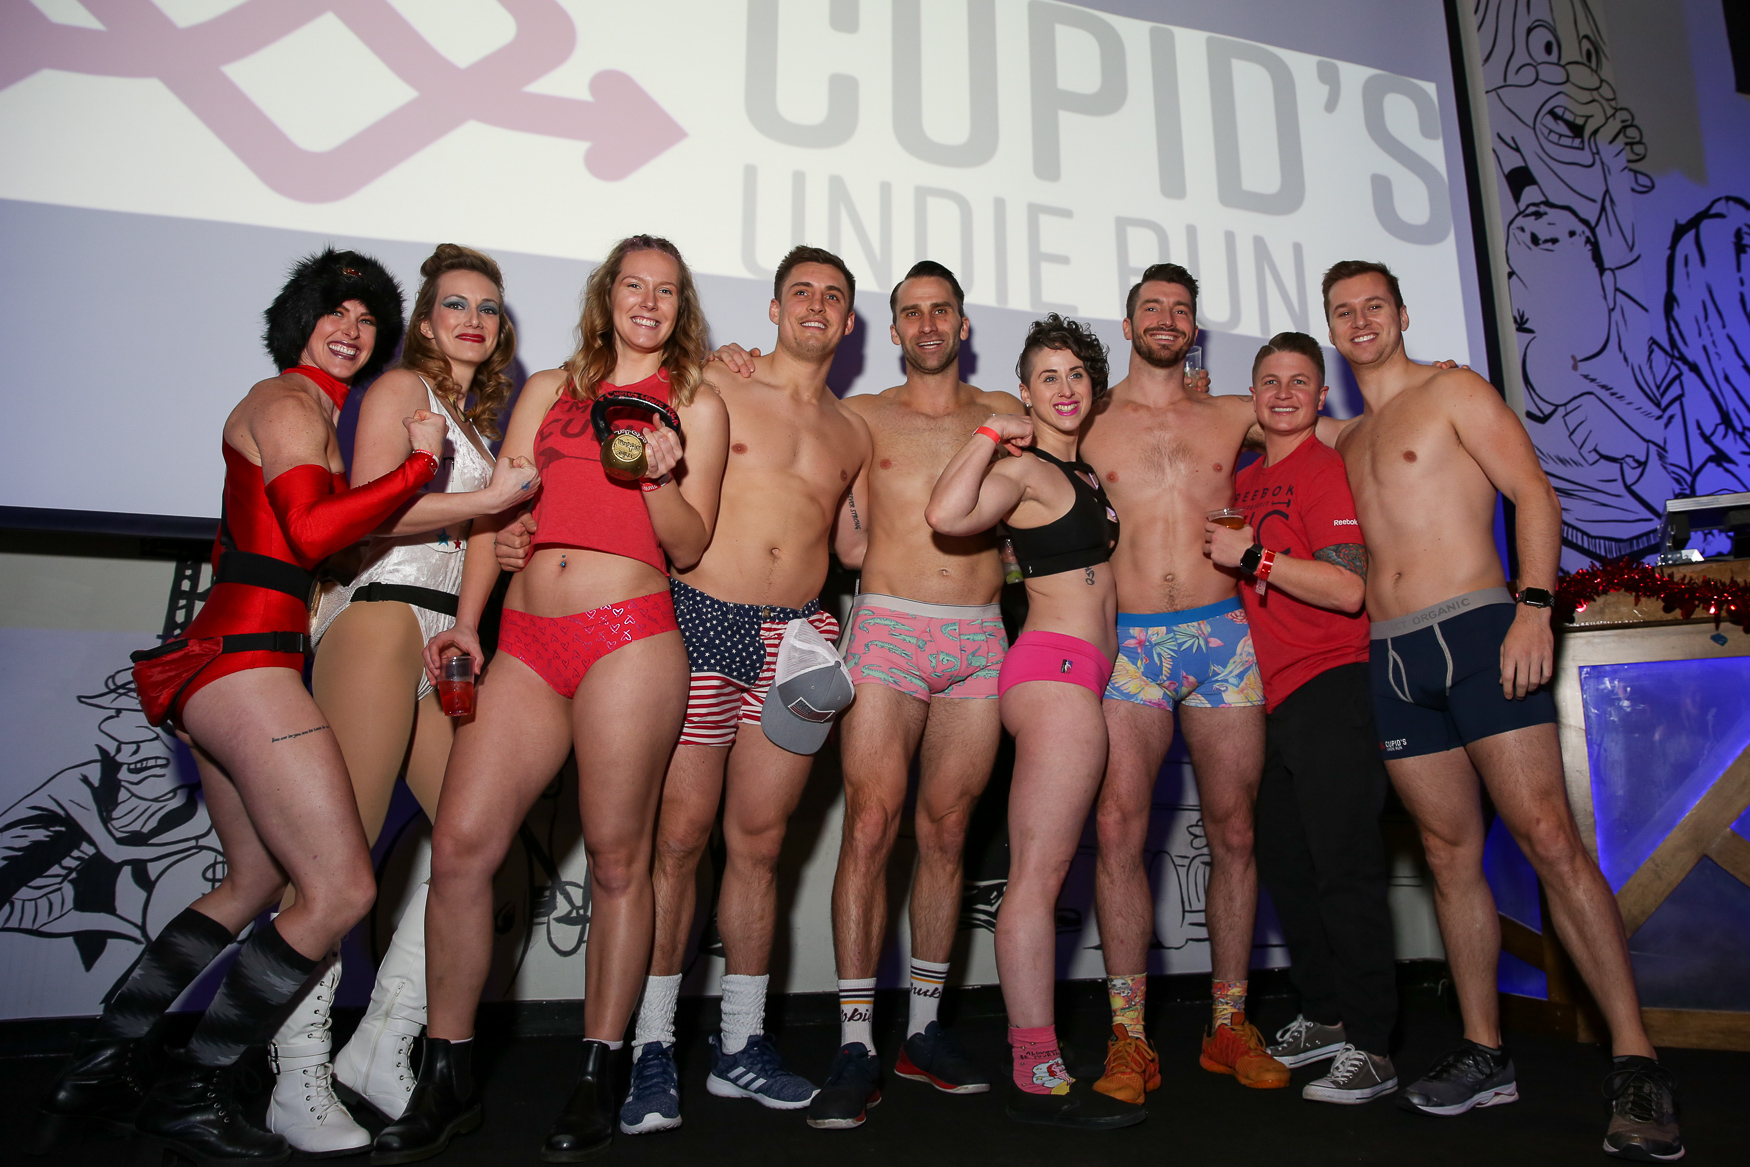 Hundreds of people stripped down and ran a mile across downtown D.C. in near-freezing weather for the annual Cupid's Undie Run. Although some folks did run in their skivvies, others opted for costumes - but it was all for a good cause. The participants raise money for children suffering from{ }neurofibromatosis, a type of pediatric cancer. In addition to the run, the participants also enjoyed drinks and some fun at Penn Social. (Amanda Andrade-Rhoades/DC Refined)